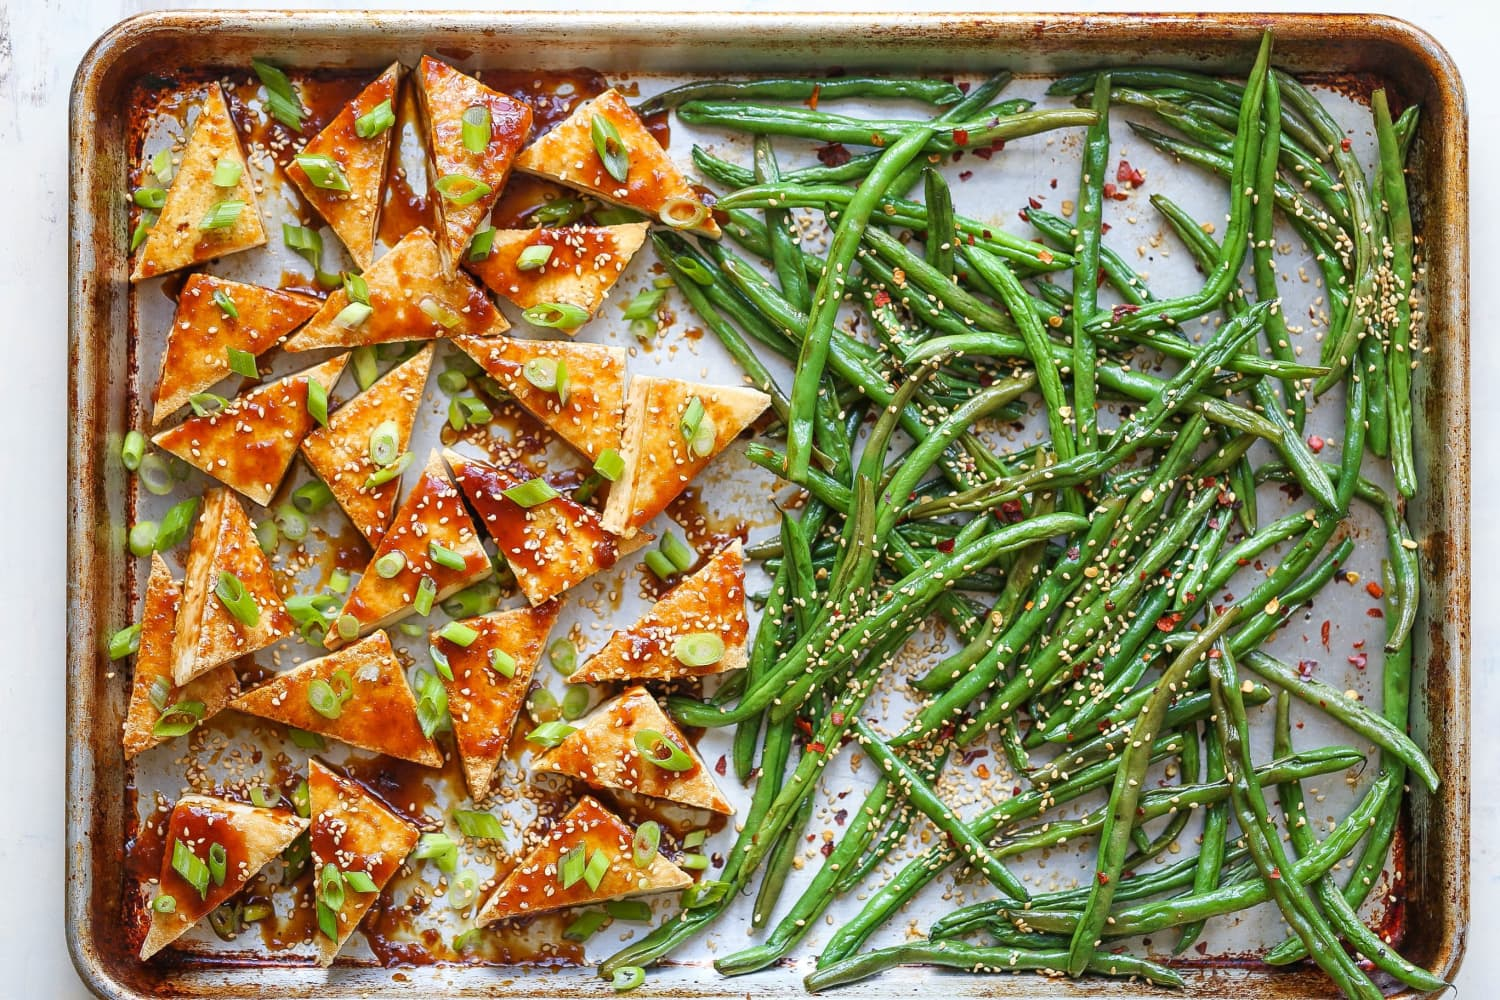 10 Ways to Turn a Bag of Fresh Green Beans into Dinner